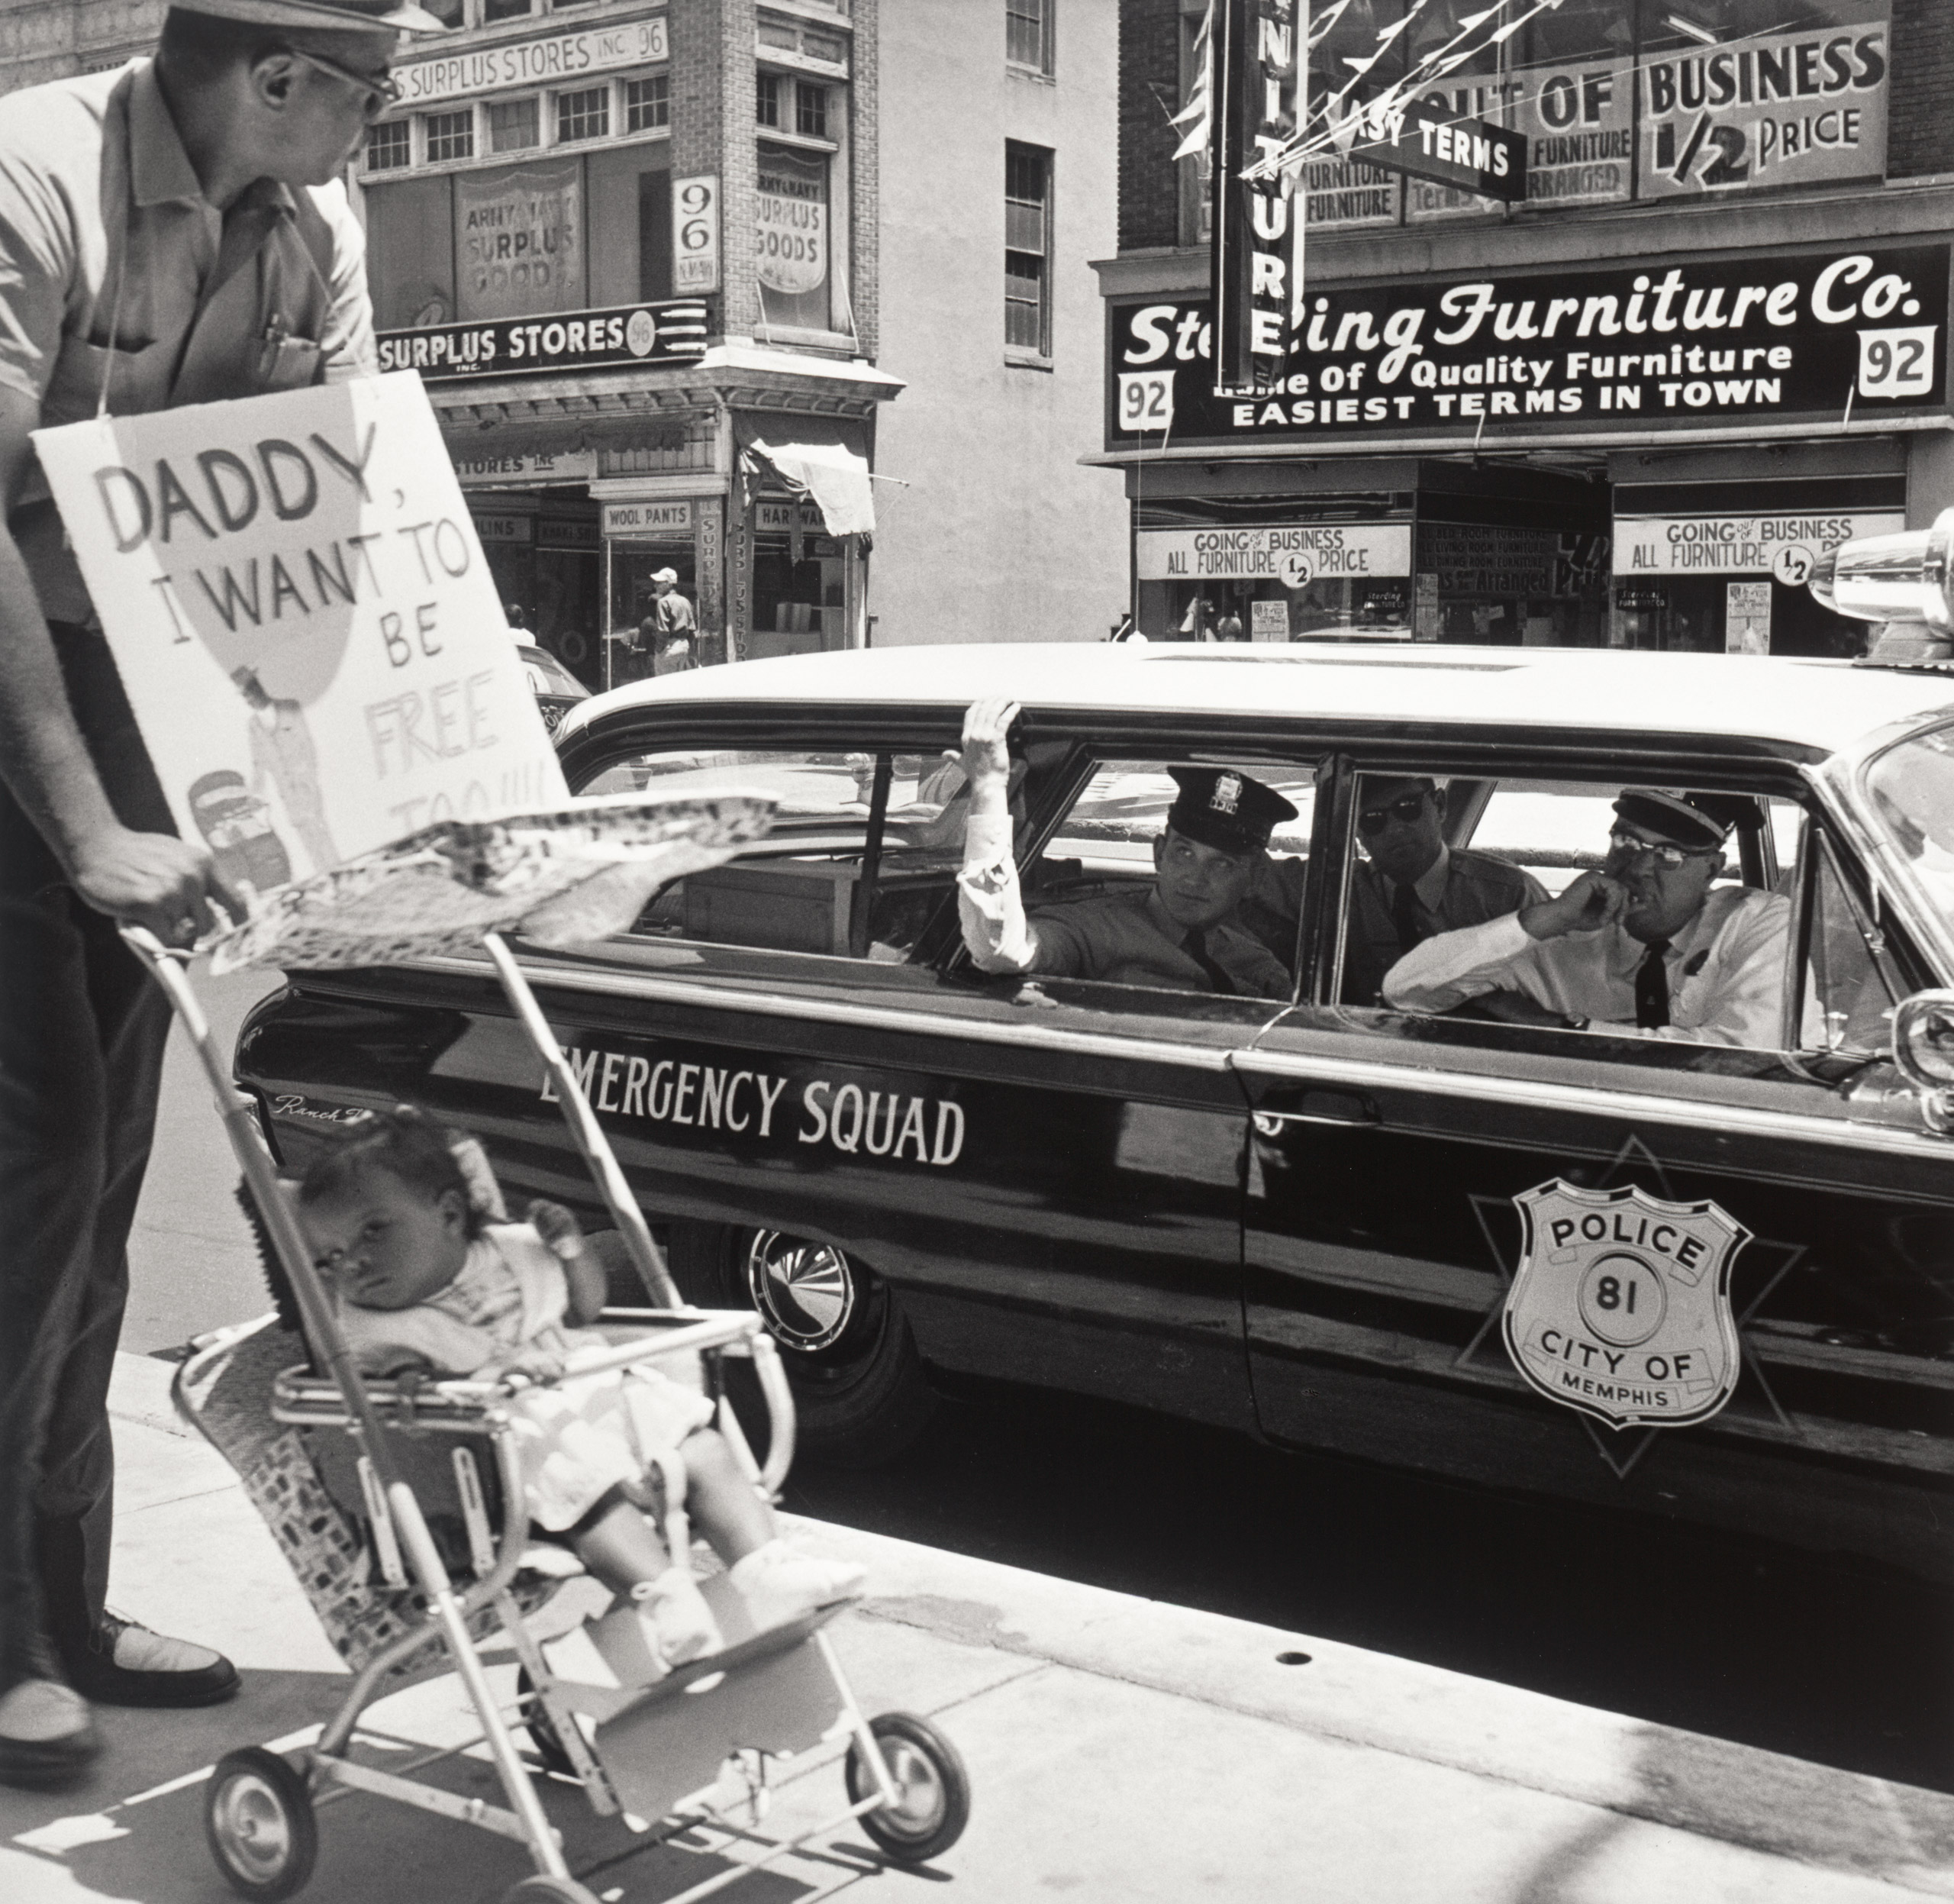 William Edwin Jones pushes daughter Renee                               Andrewnetta Jones (8 months old) during protest march                               on Main St. in Memphis Tennessee. August 1961